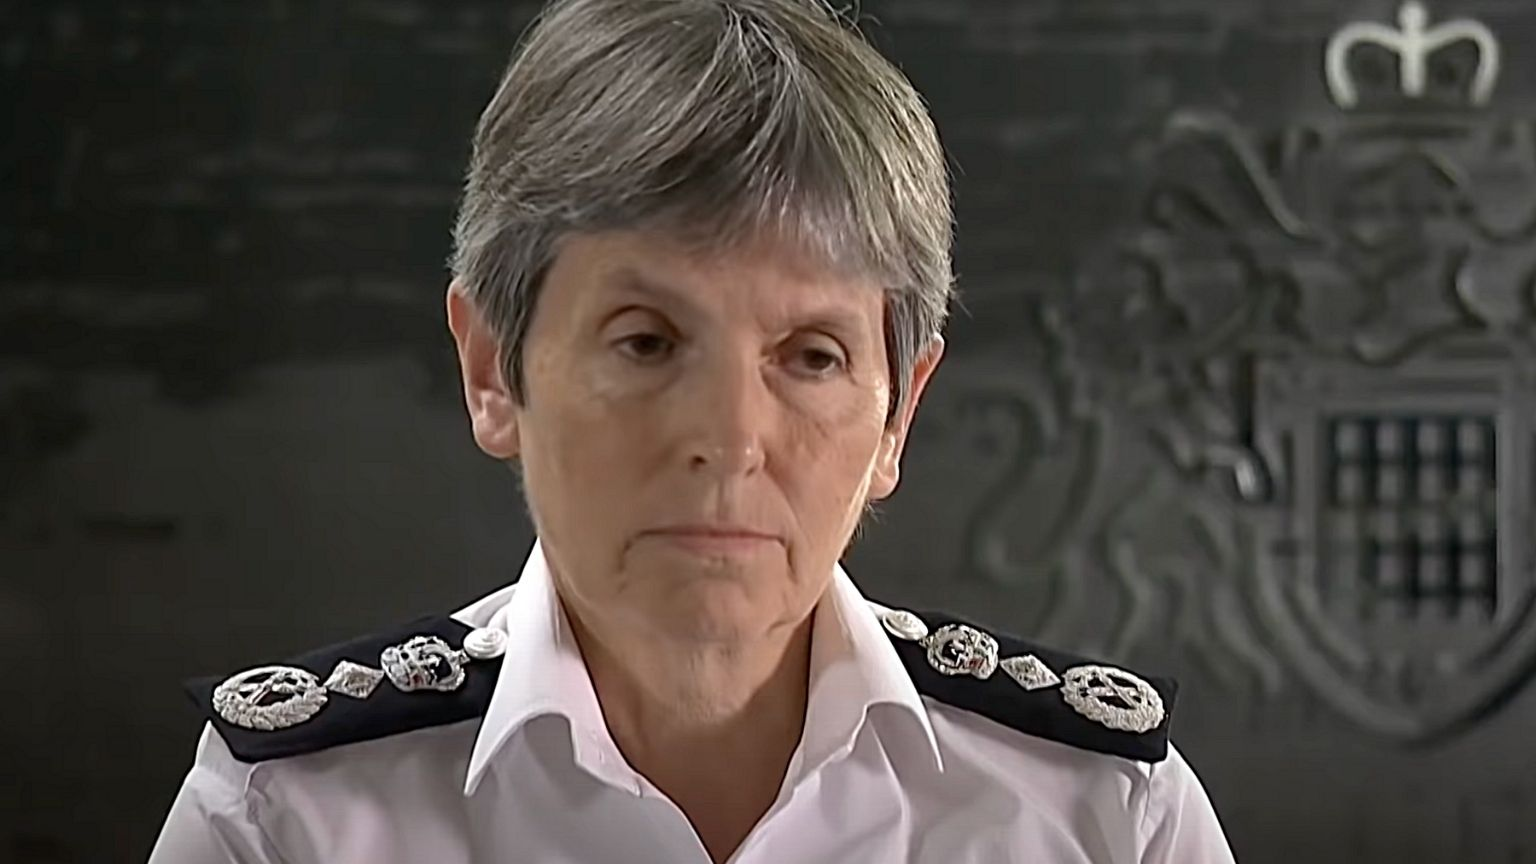 London Met police chief invokes 9/11 to call for ban on private messaging